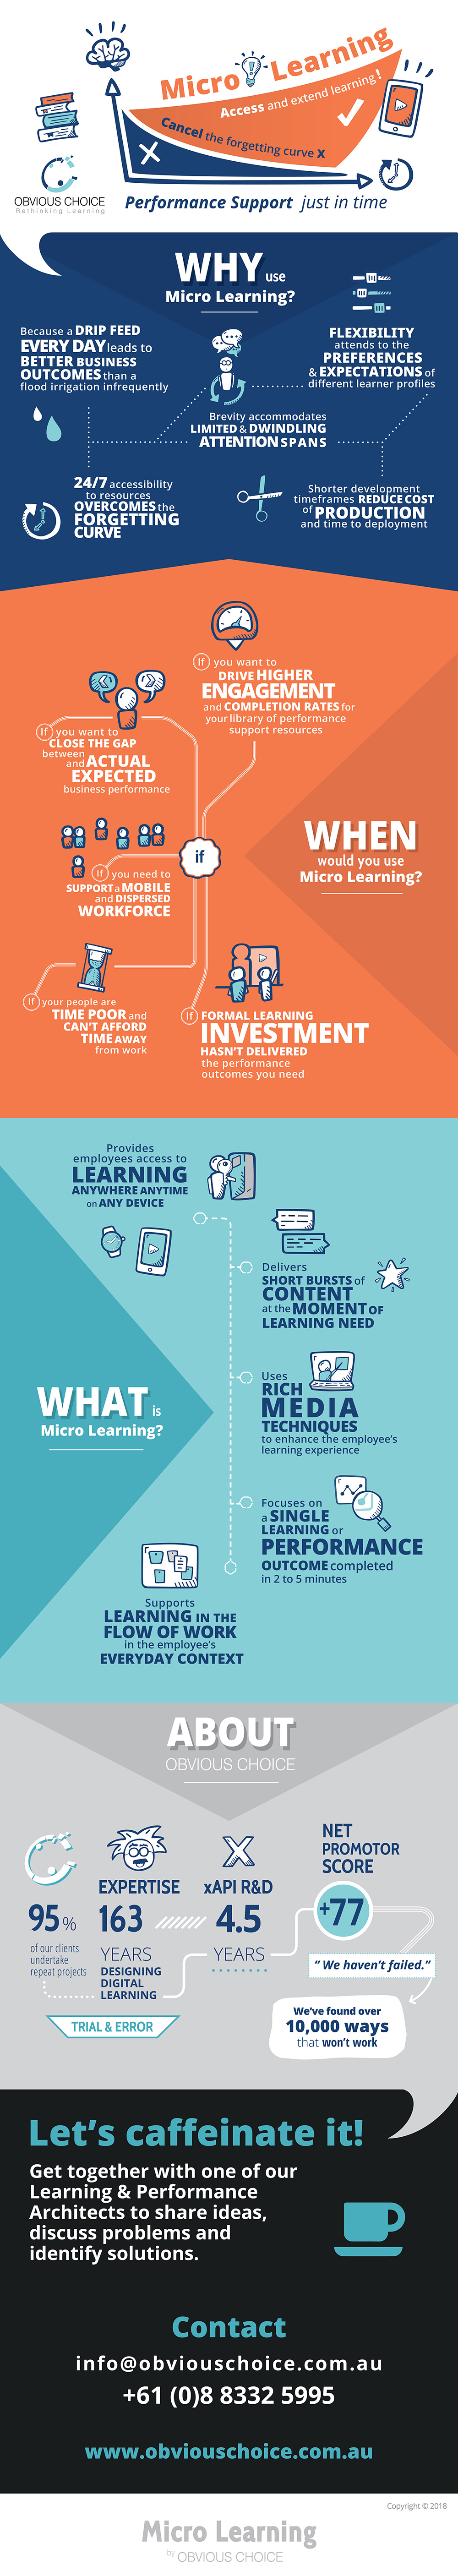 Micro Learning Infographic by Obvious Choice